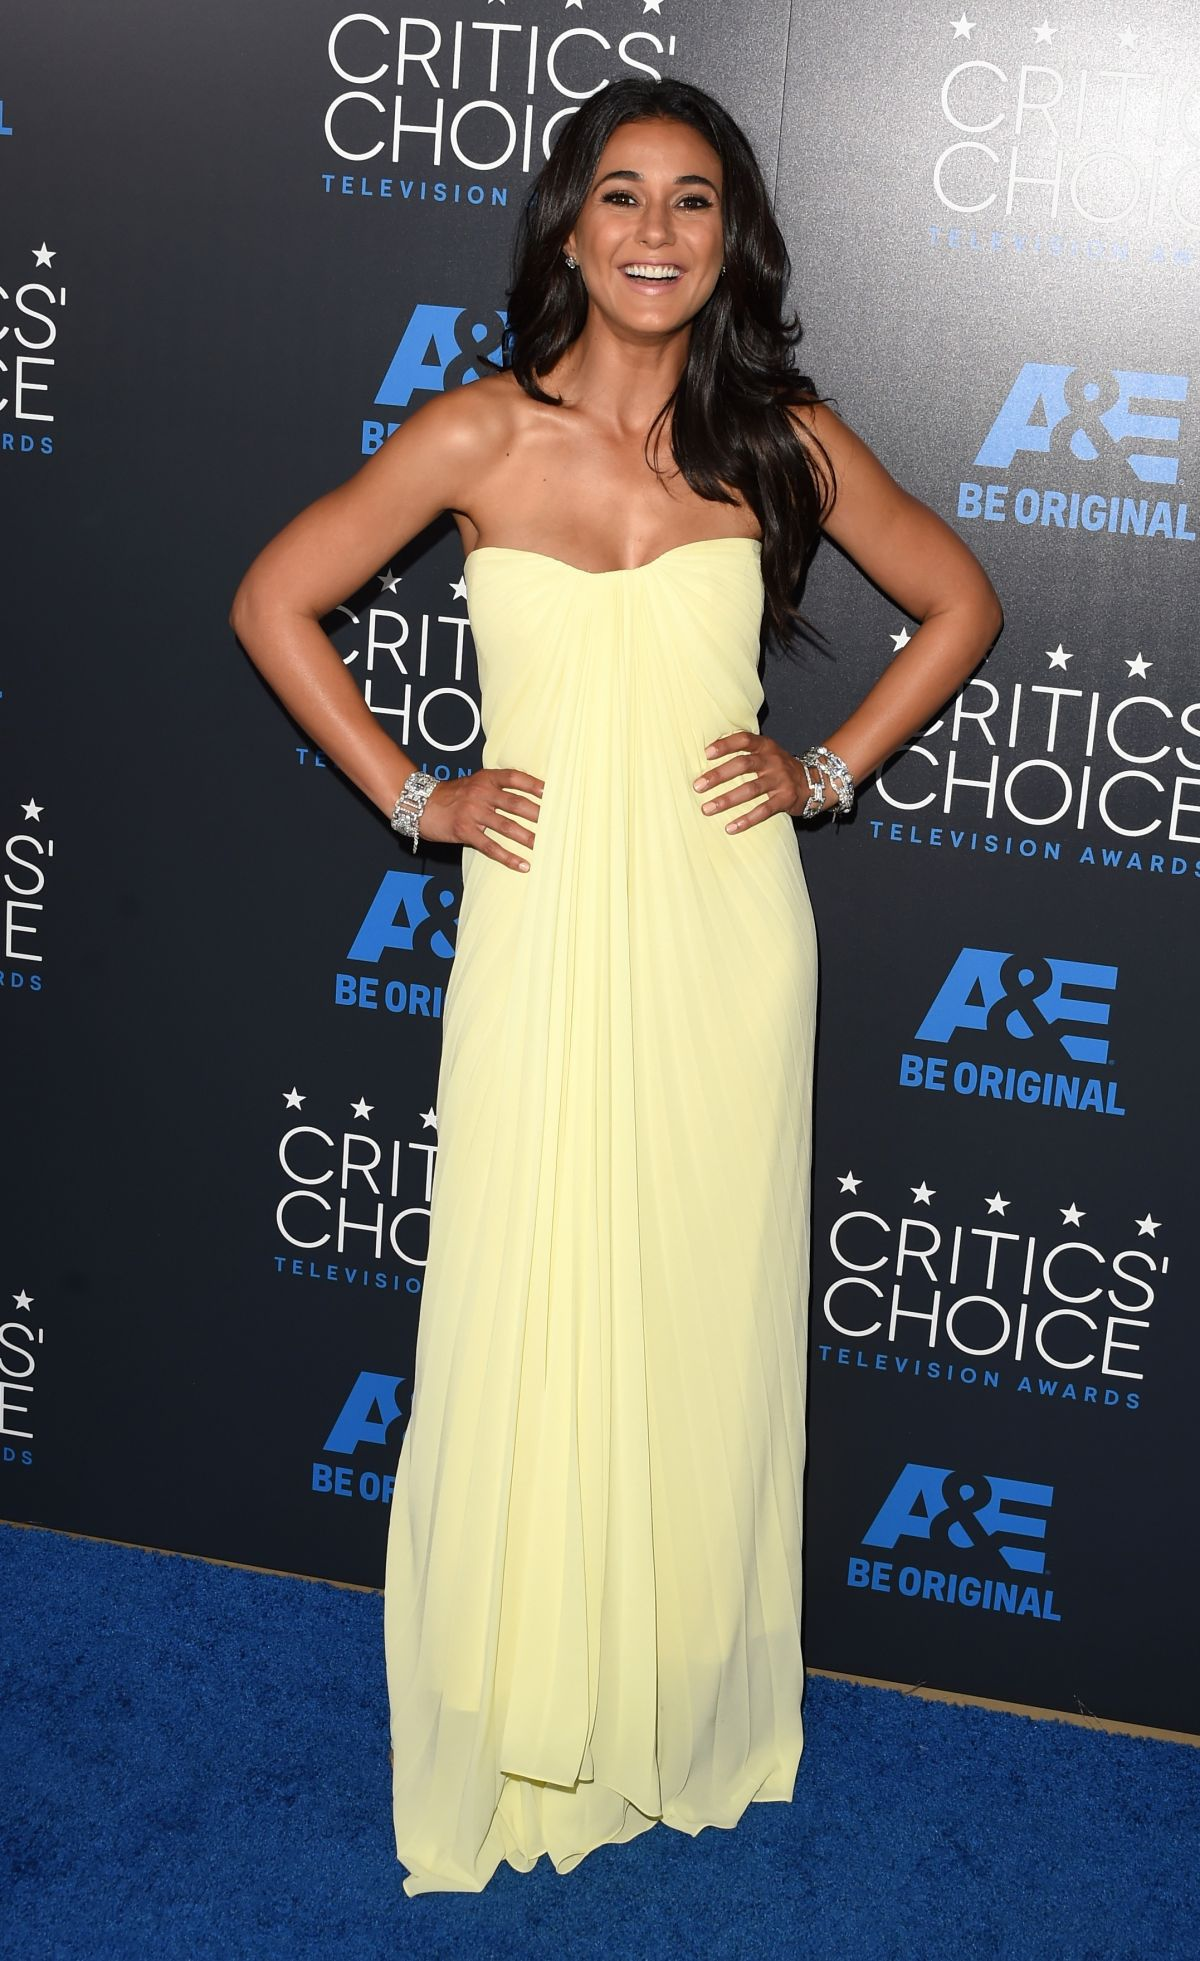 emmanuelle-chriqui-at-5th-annual-critics-choice-television-awards-in-beverly-hills_4